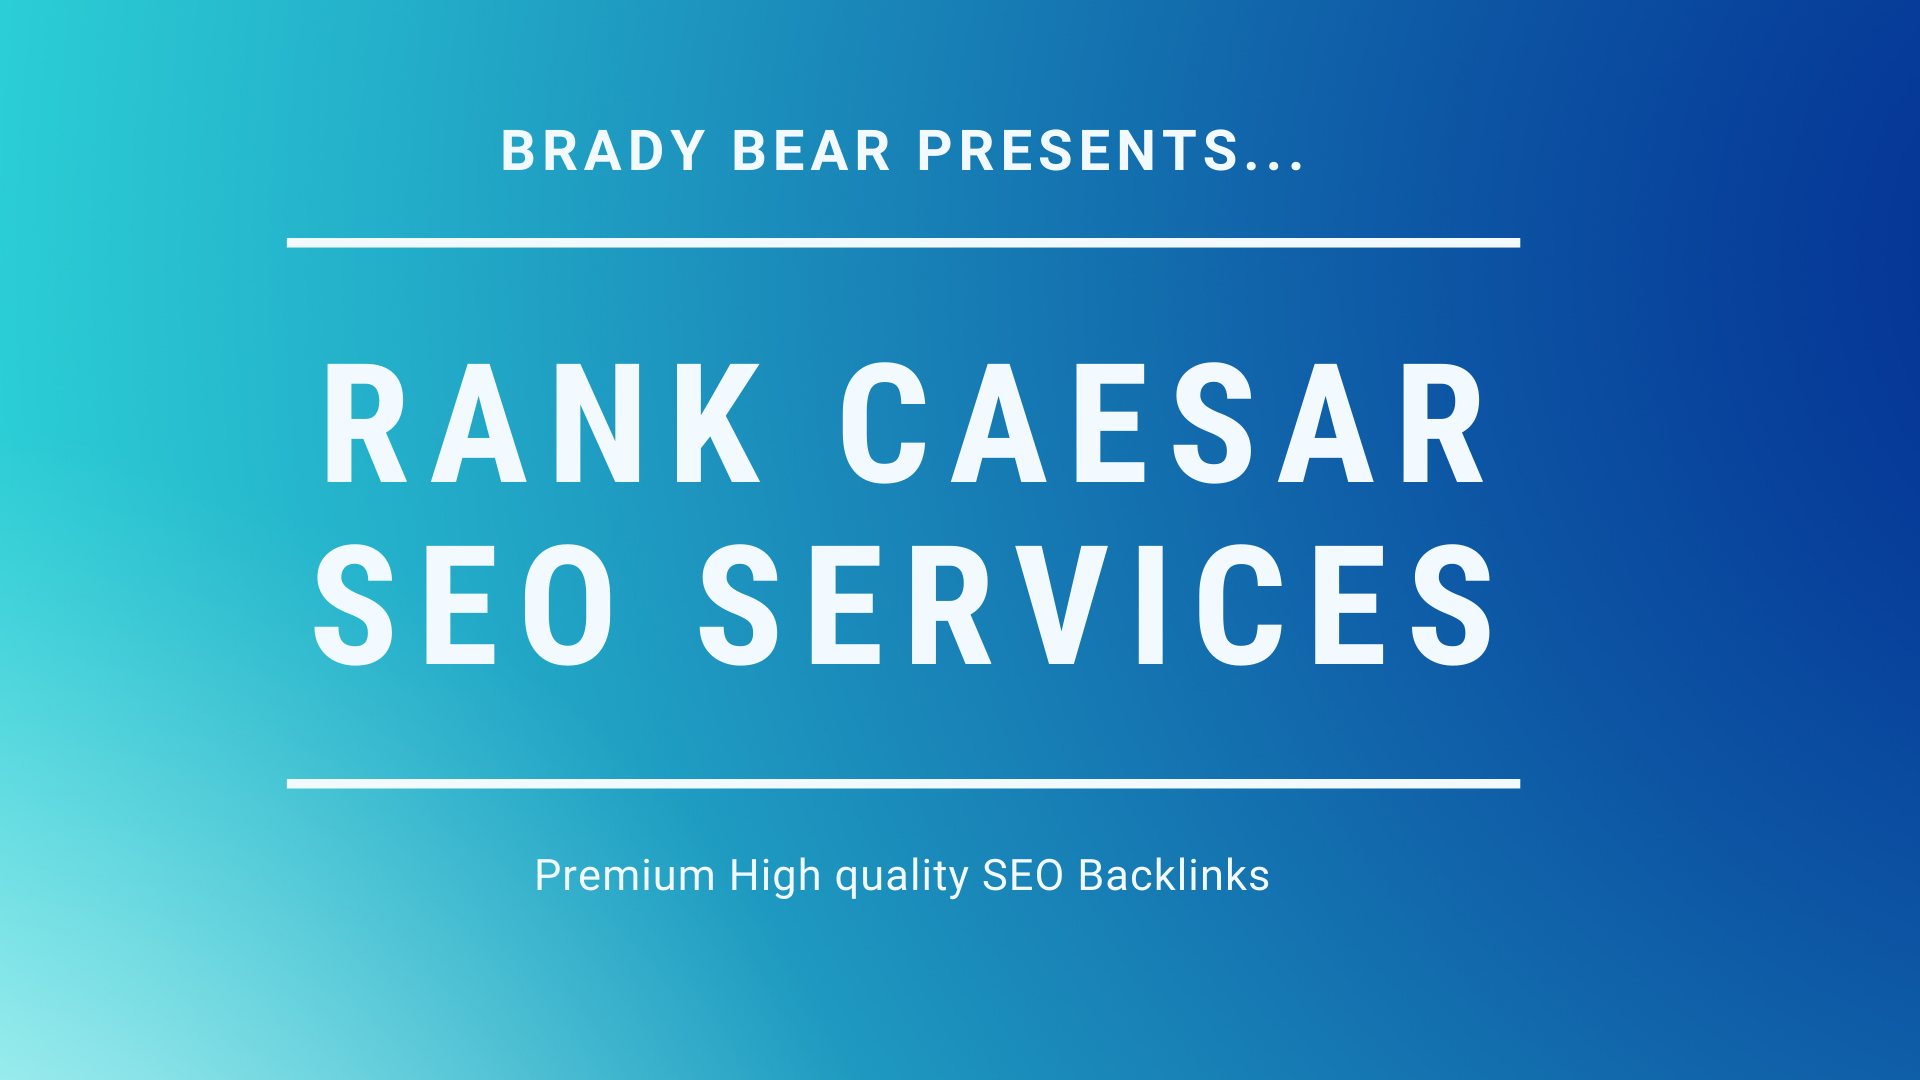 Rank Caesar SEO Services Offers Premium Backlinks for your website